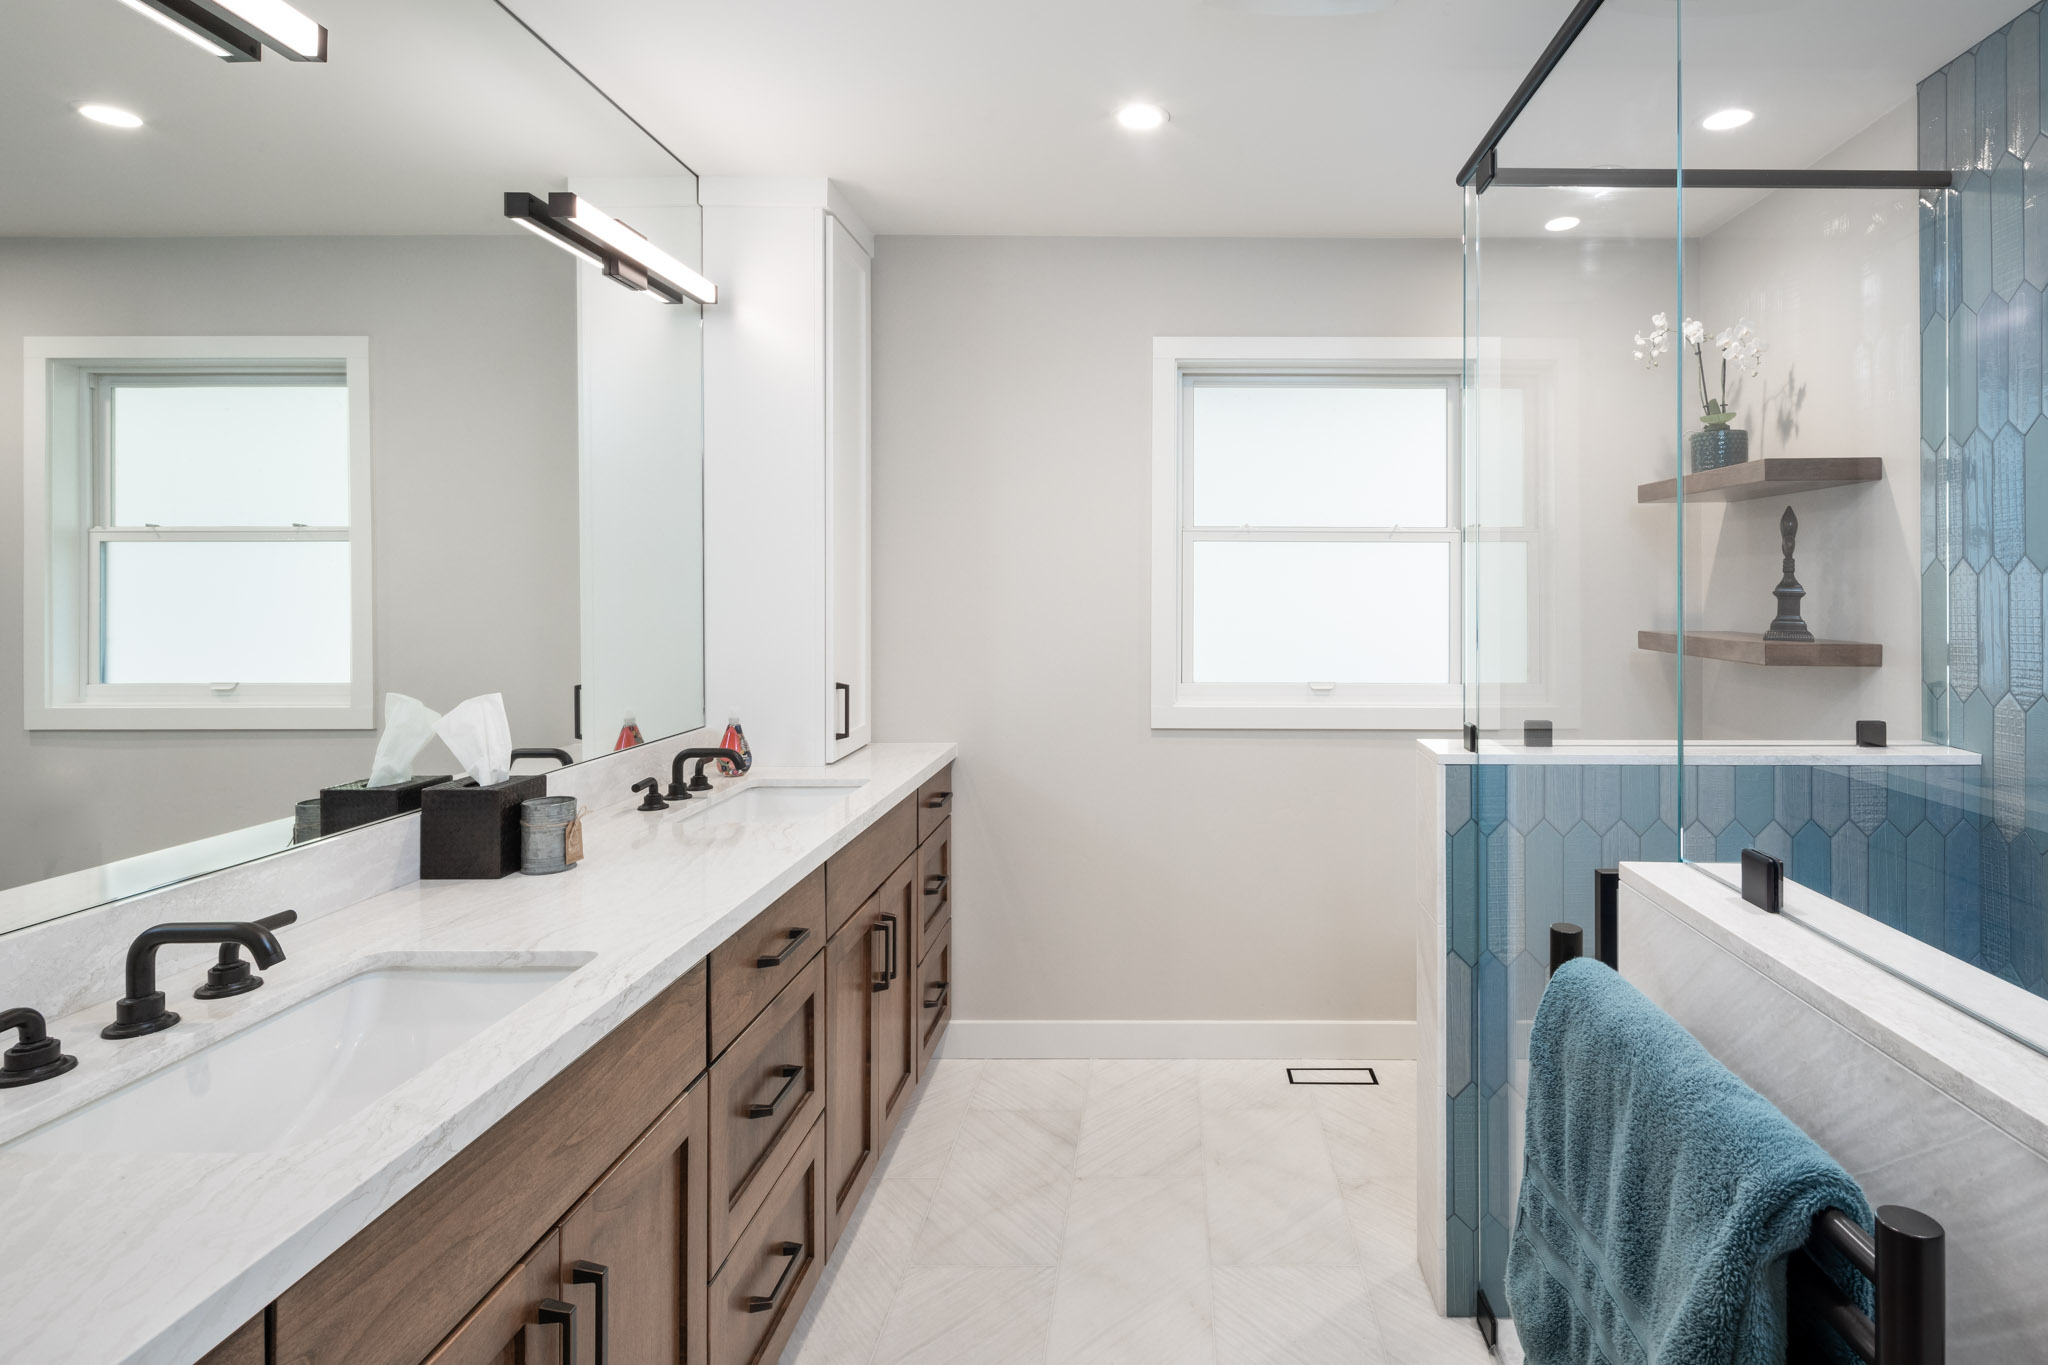 Bathroom with white and blue contrast creates open space